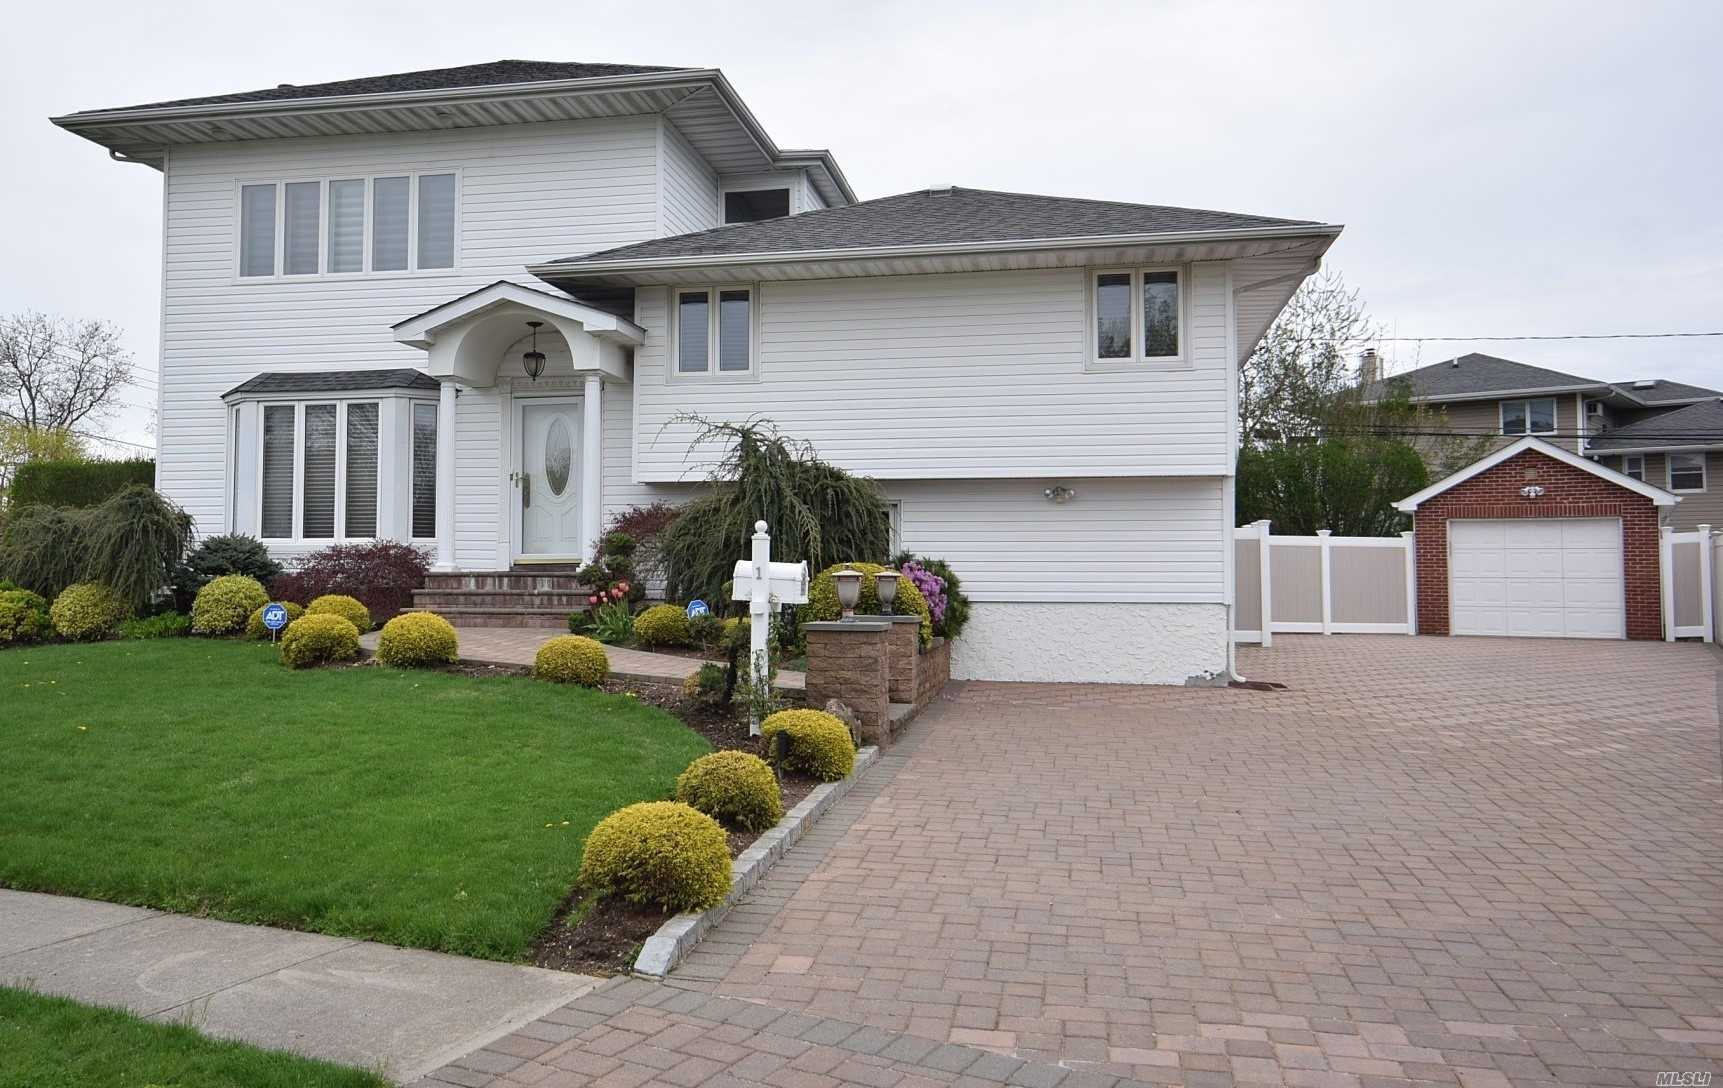 Move-in Ready, Beautifully Expanded and Renovated 2008, Huge Master Bedroom Suite with Full Marble Bath( Jacuzzi) and Walk in closet, Expanded Den, Gorgeous Hardwood Floors, Gas Heating, Large 2Tier Trex Deck, Brick Patio, PVC Fenced Parklike Property for Entertainment with Putting Green